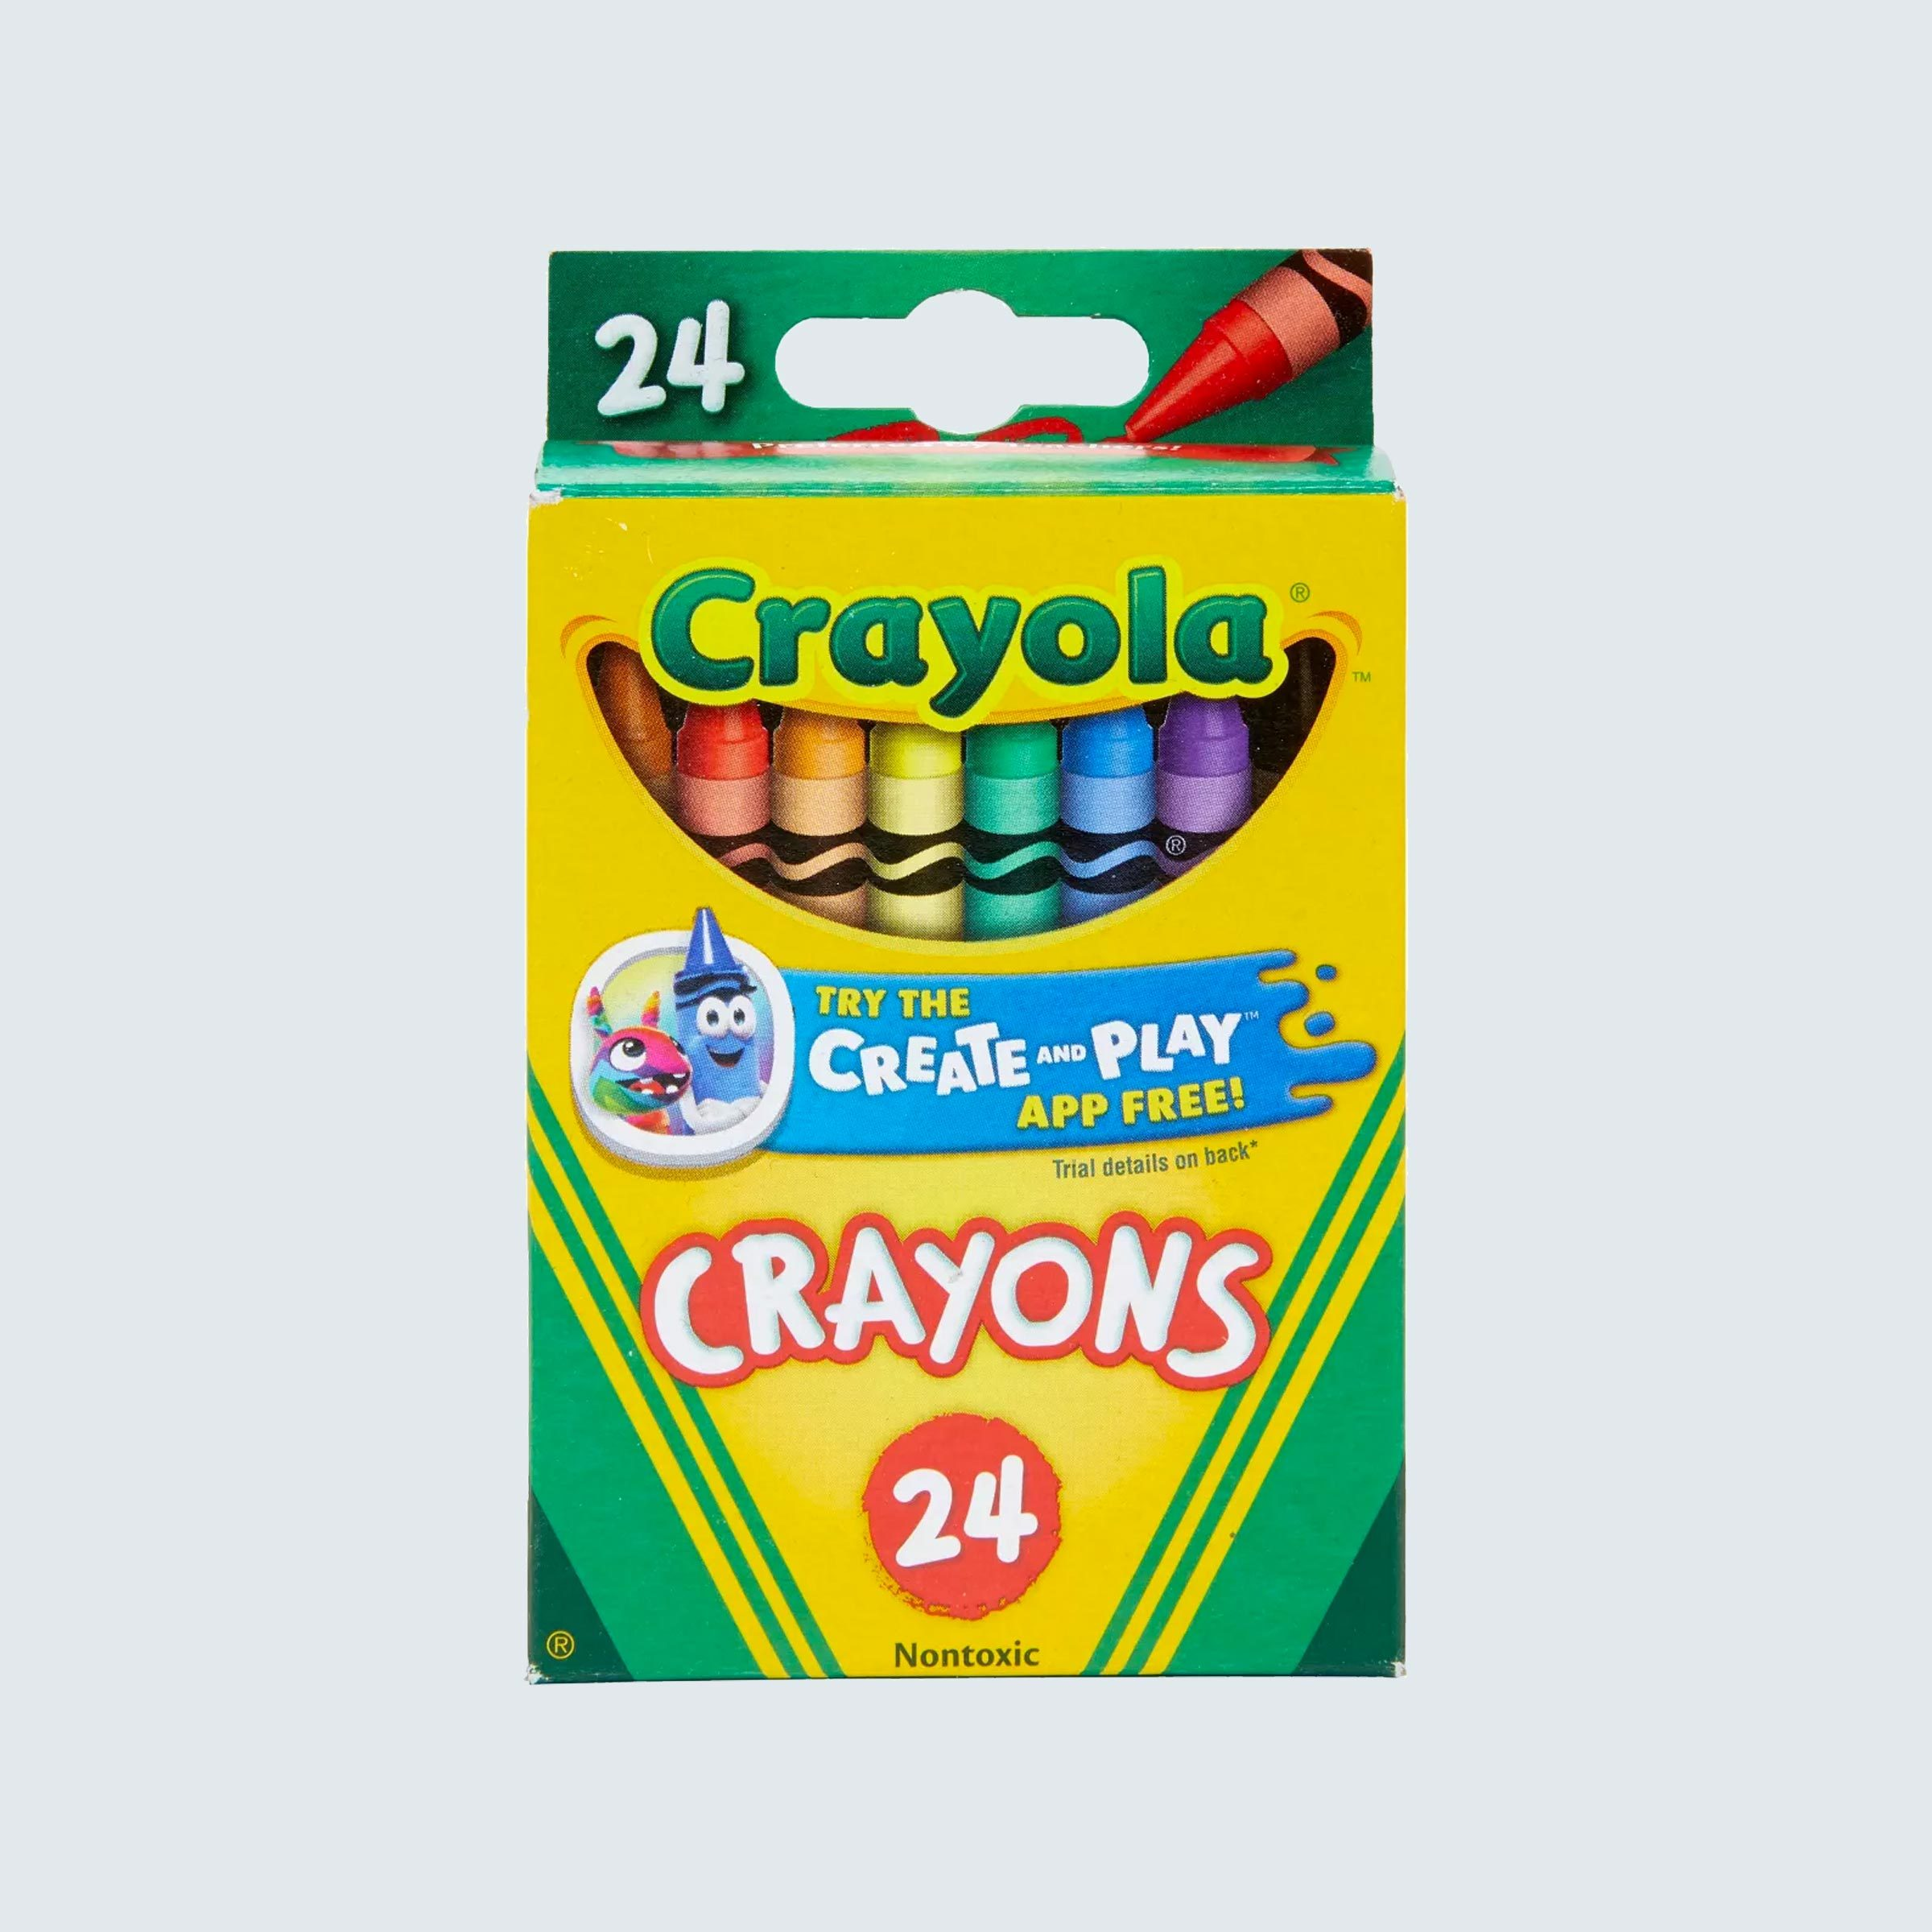 Crayola Crayons are 50¢ per pack